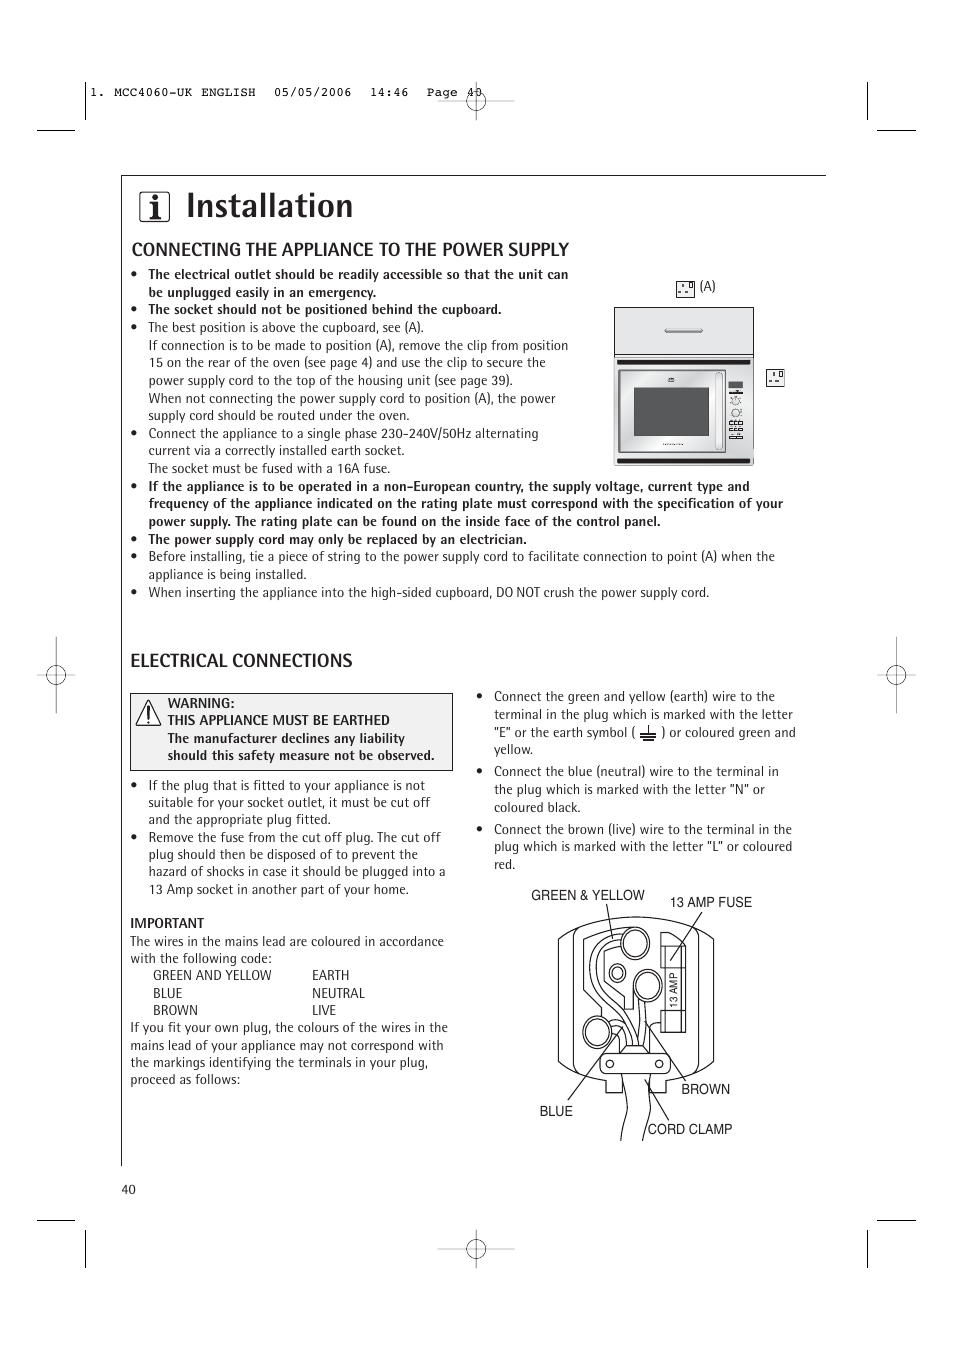 Installation Connecting The Appliance To Power Supply Wire Schematic Pg Amp E Symbols Electrical Connections Electrolux Mcc4060e User